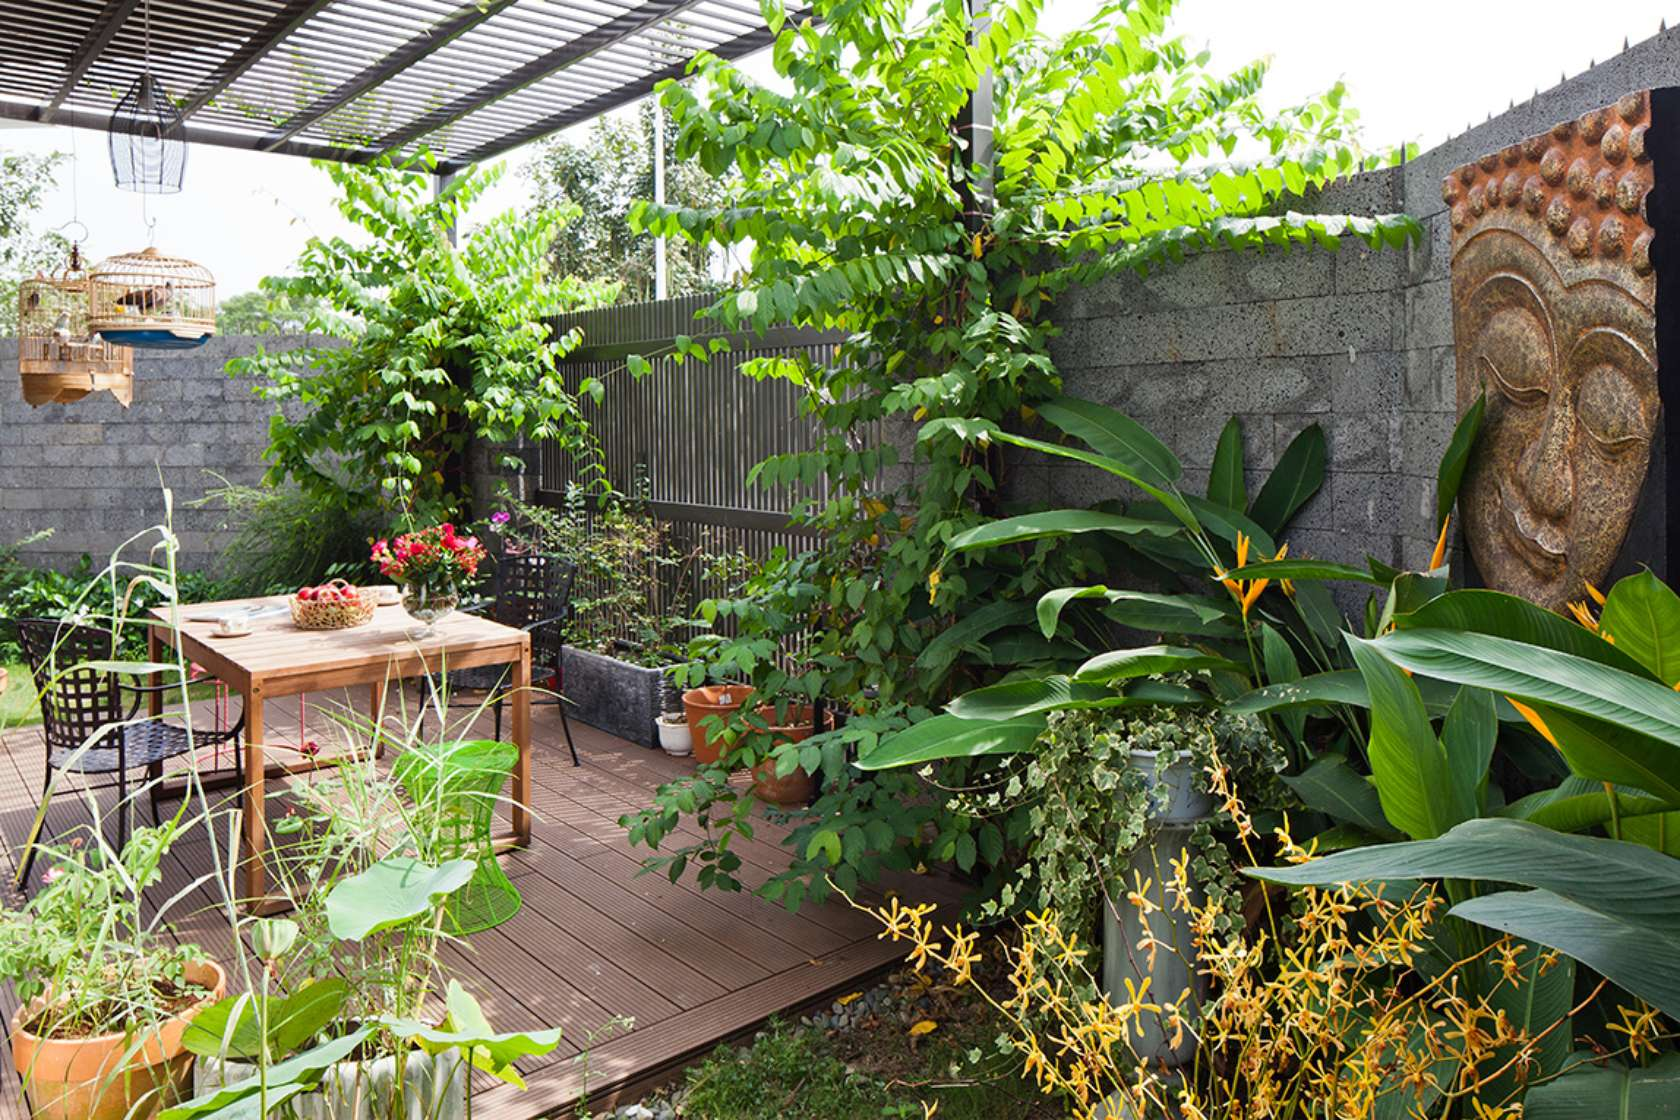 Newspaper of the West praised the words of 3-storey townhouse with beautiful garden in Saigon - Beautiful House No. (7)